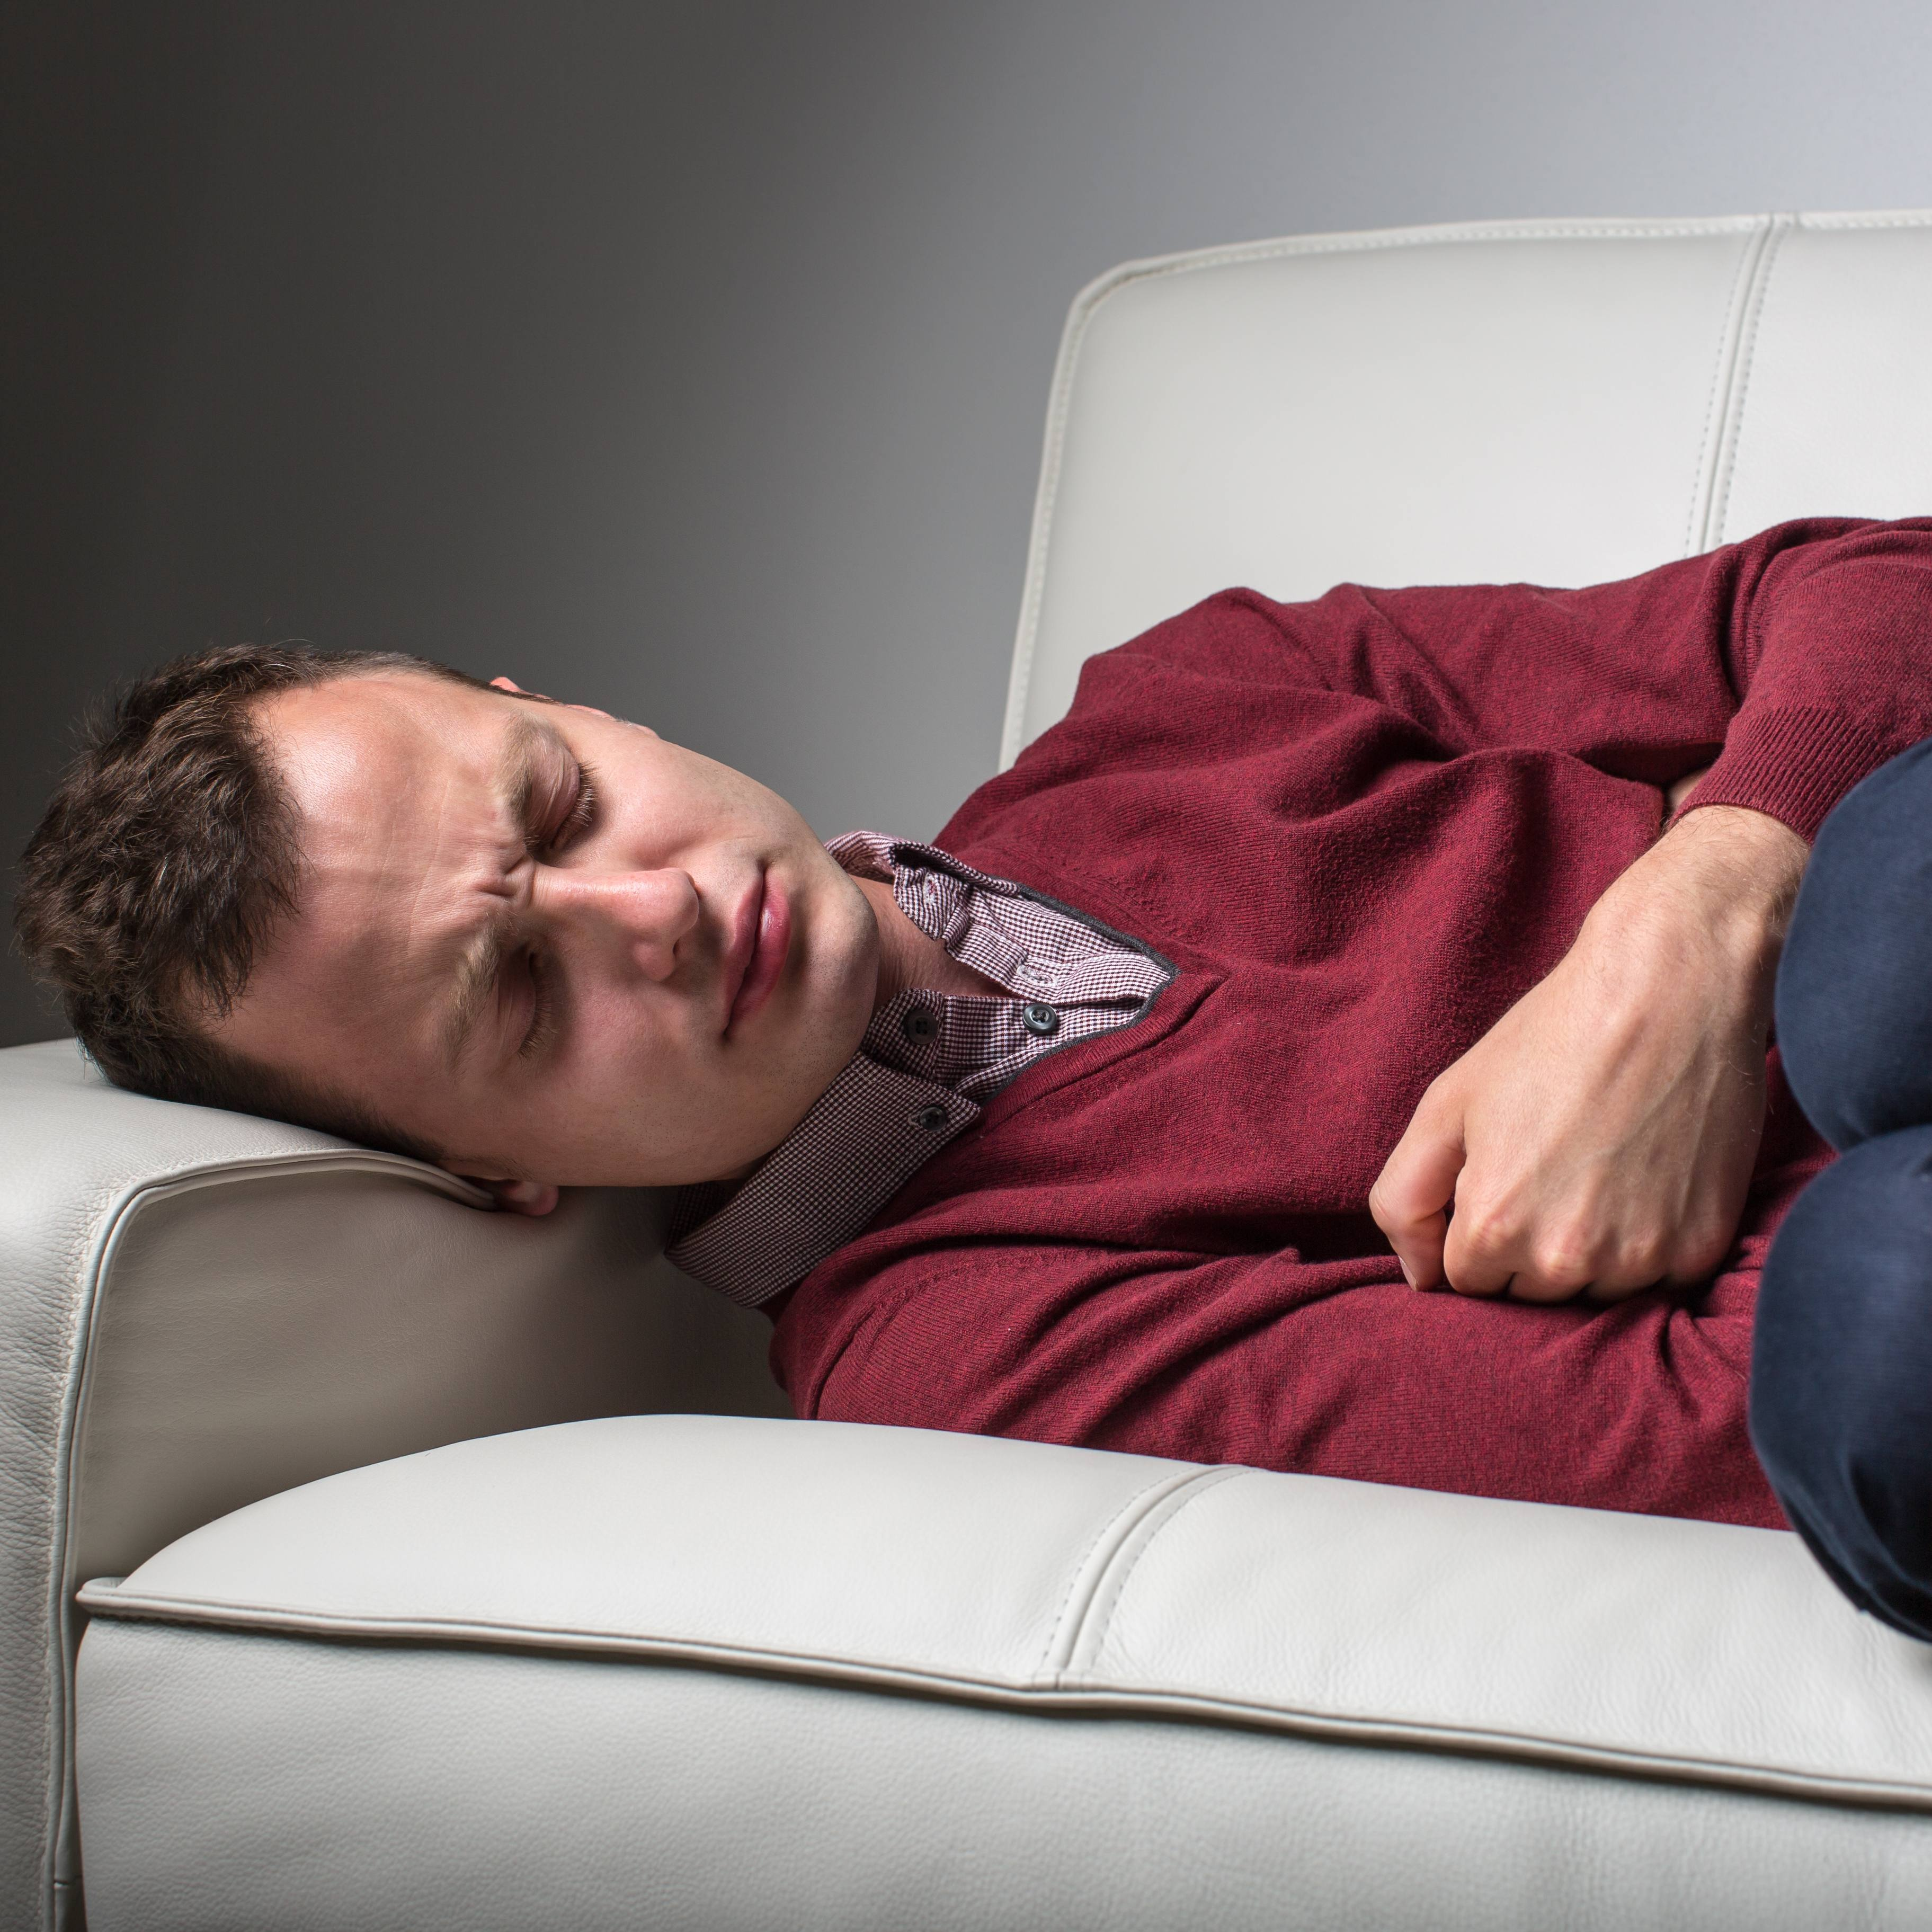 man lying on a couch suffering from severe stomach pain